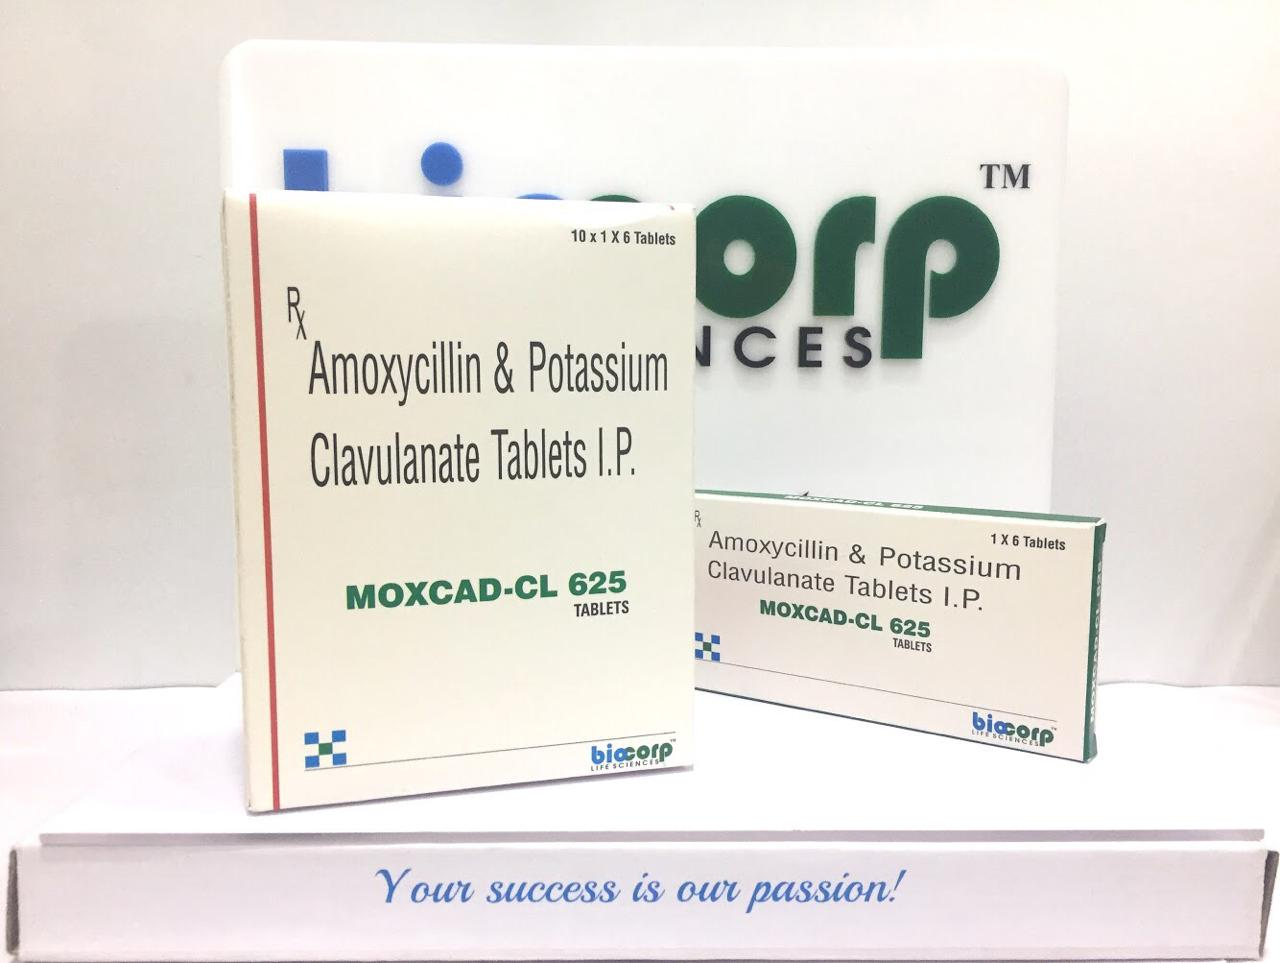 Moxcad-CL 675 Tablets